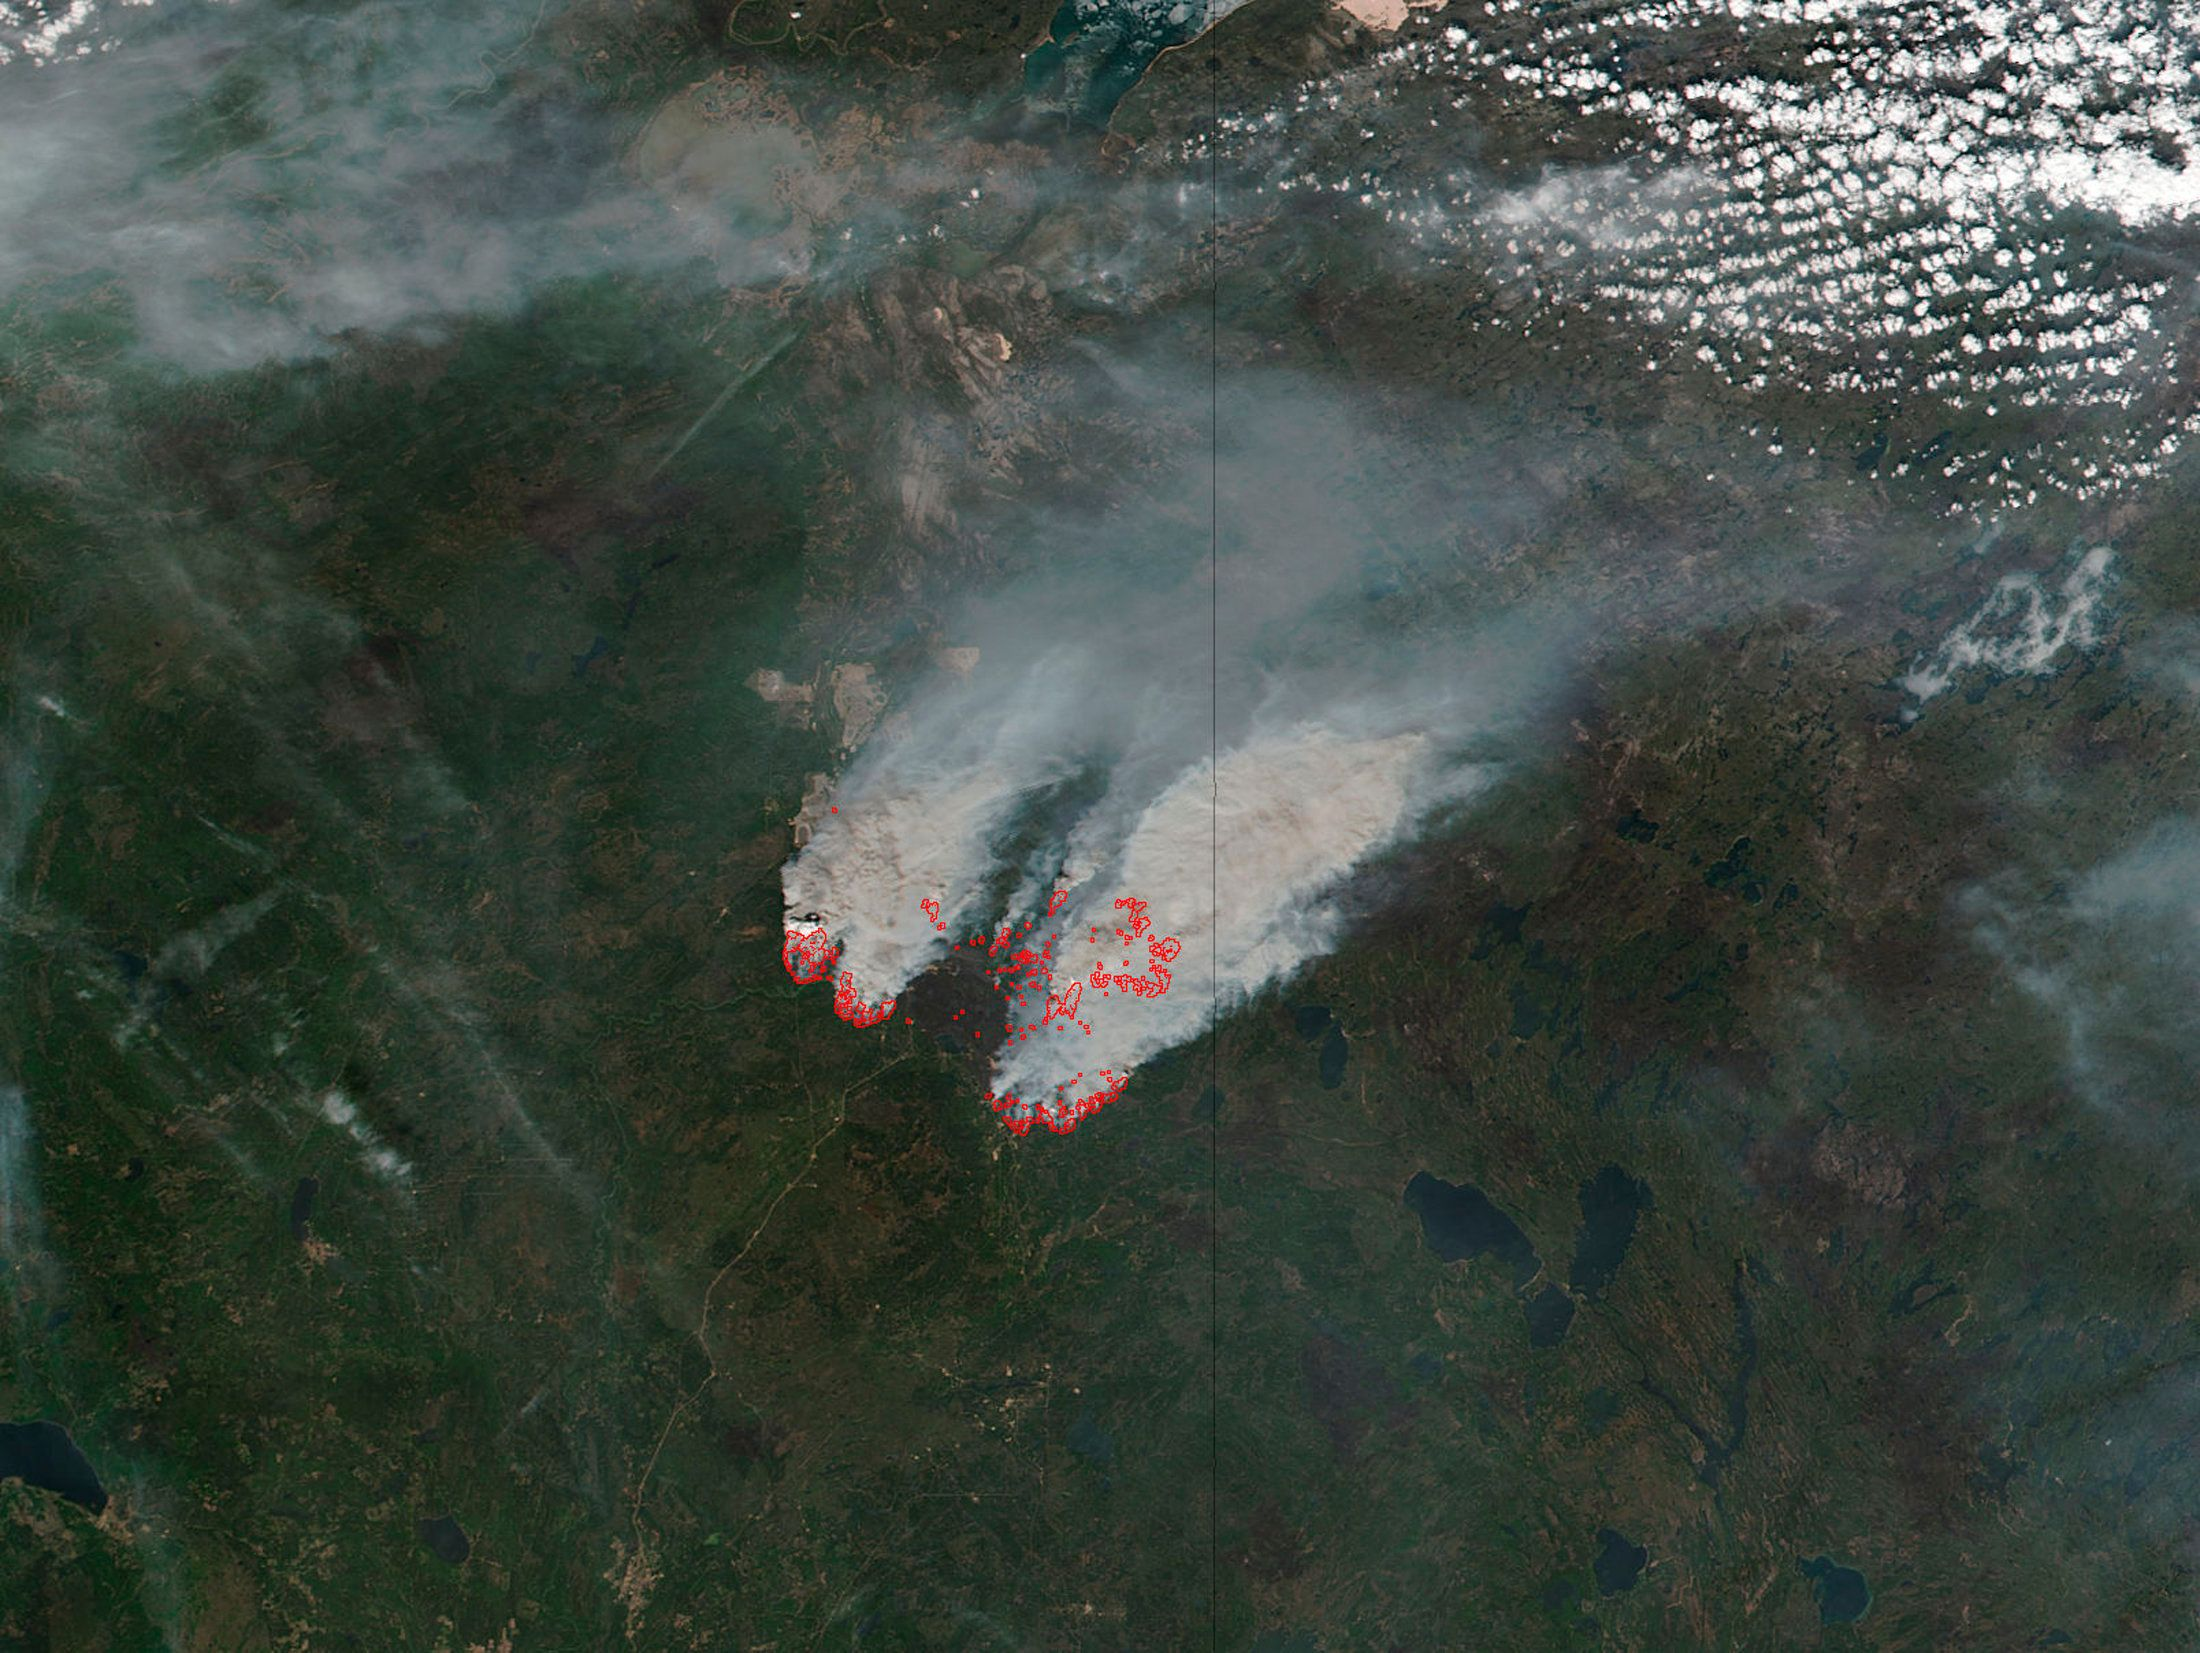 NASA's satellite image shows columns of smoke rising up from the myriad of wildfires, with NASA outlining actively burning ar